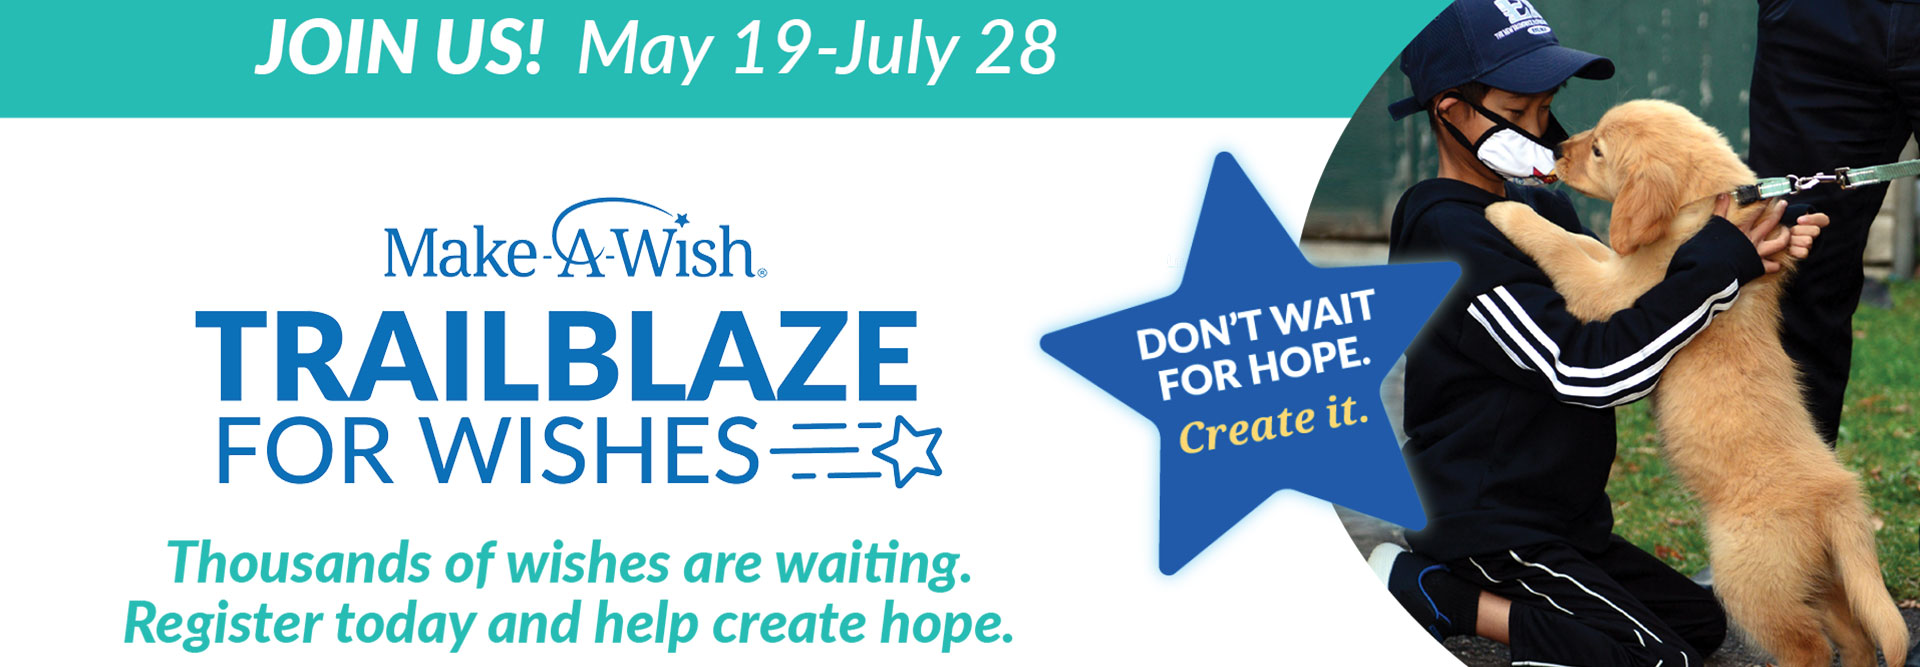 trailblaze for wishes